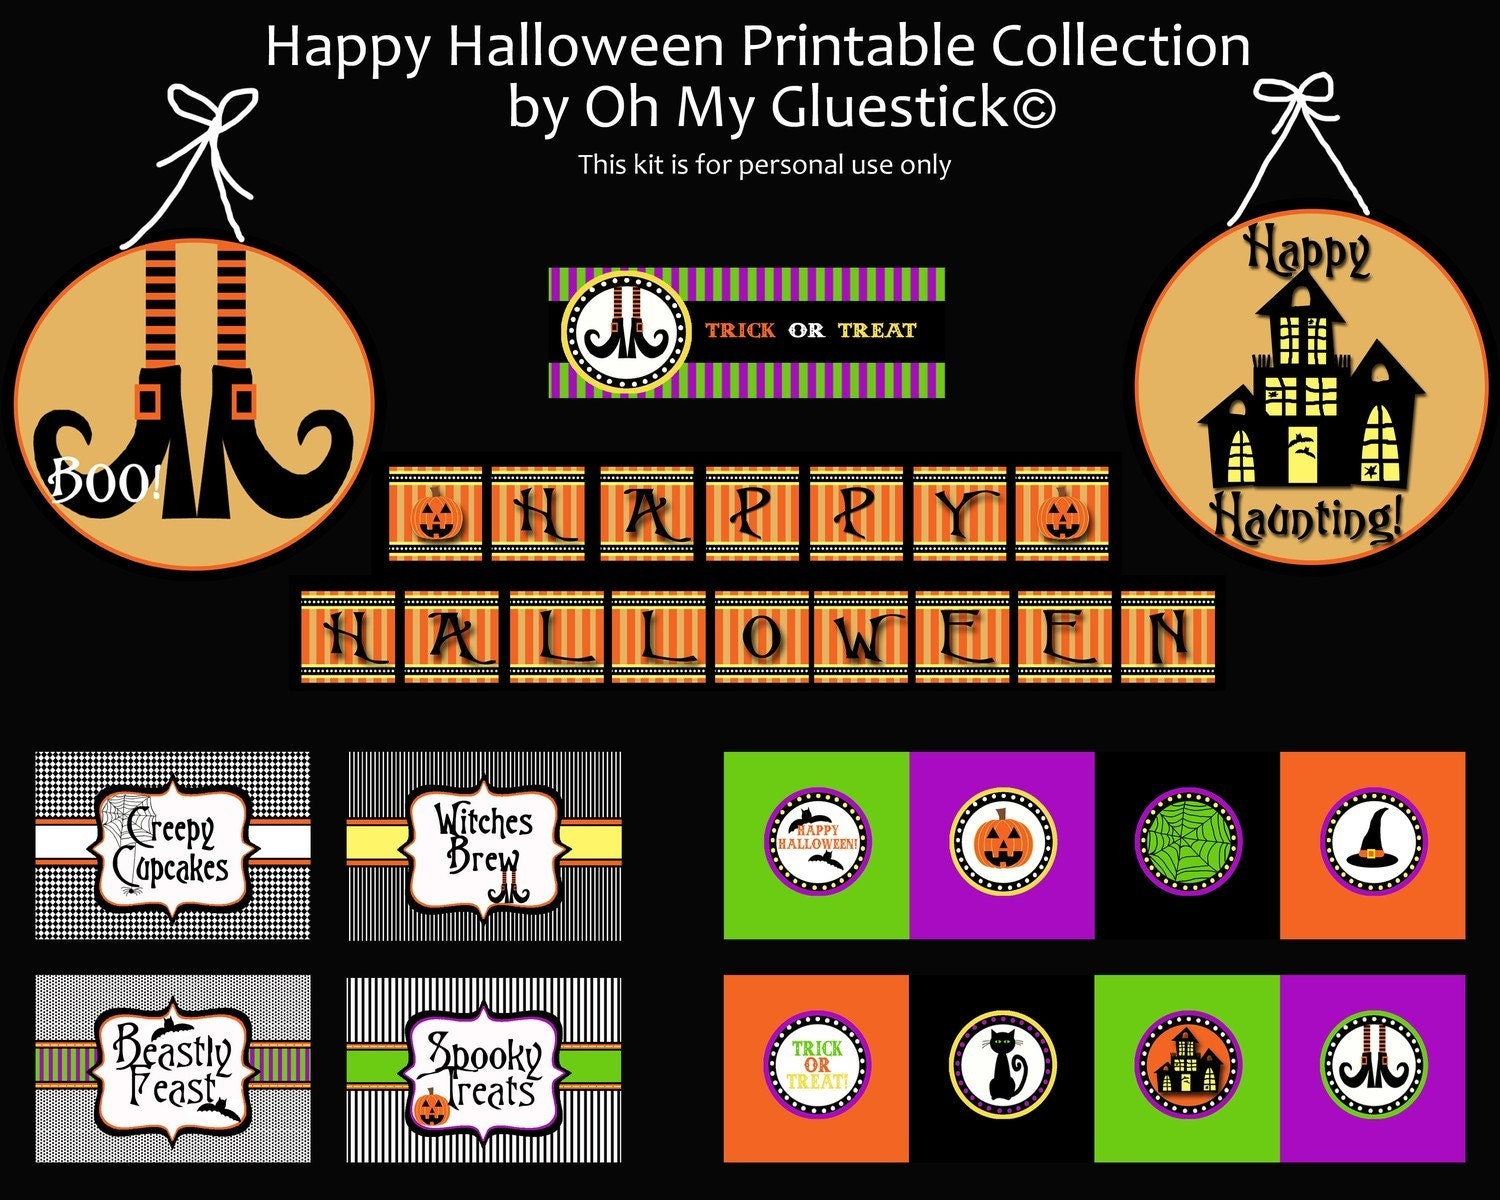 Happy Halloween Printable Party Collection -On Sale through Sept 15-